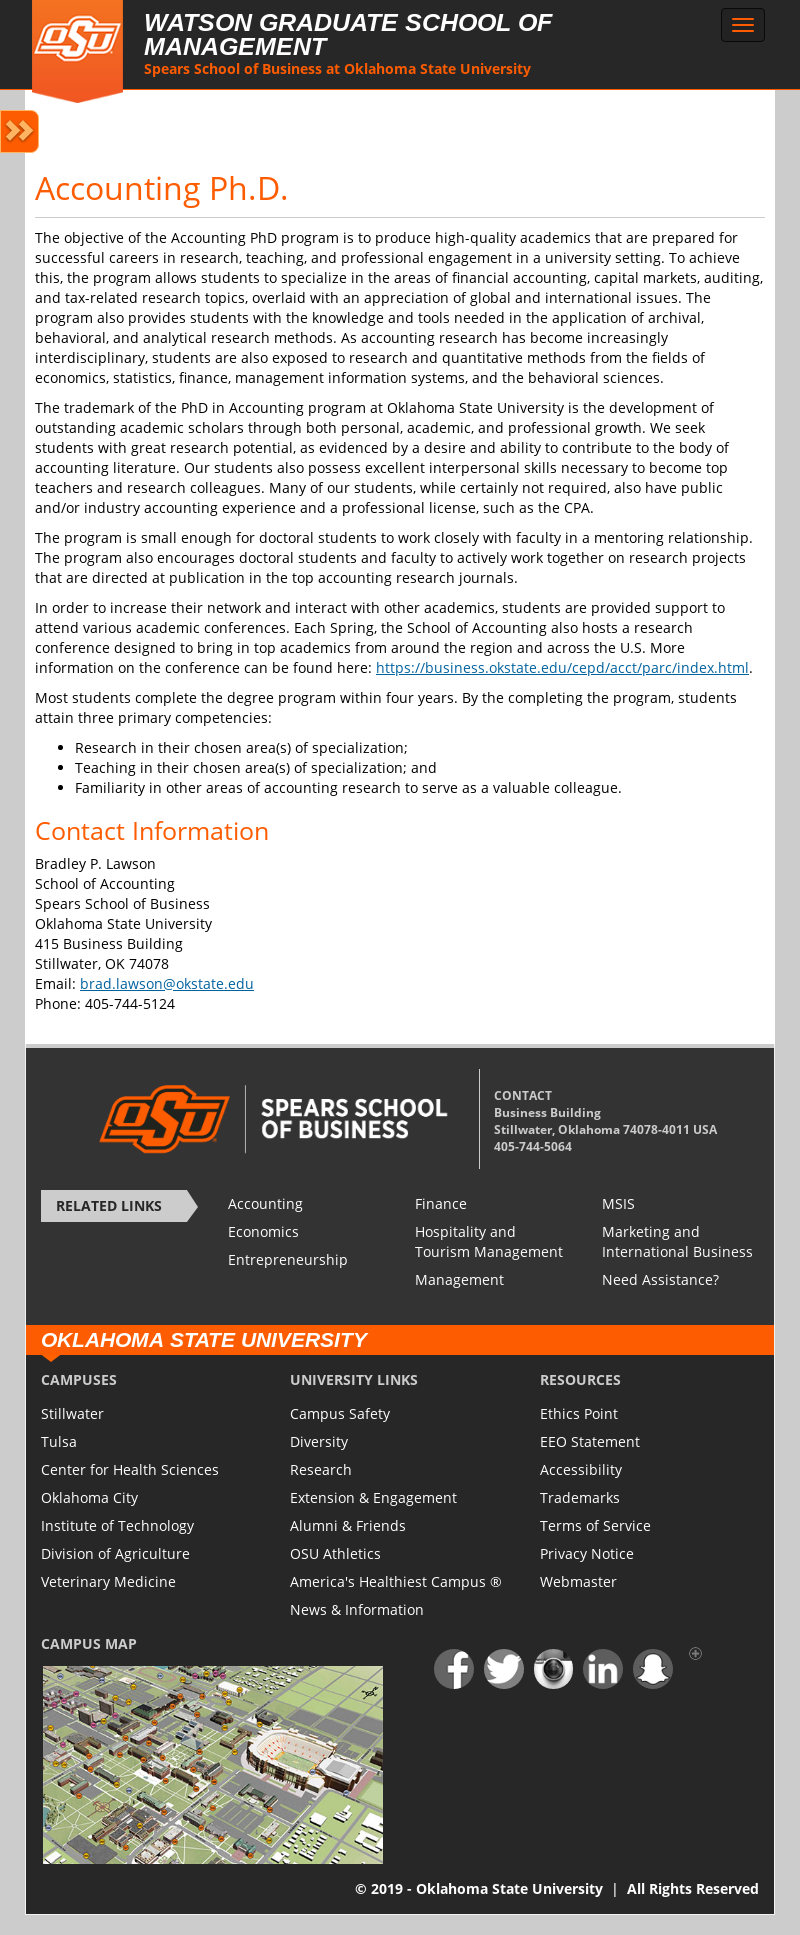 Oklahoma State University Spears School of Business PhD in Accounting